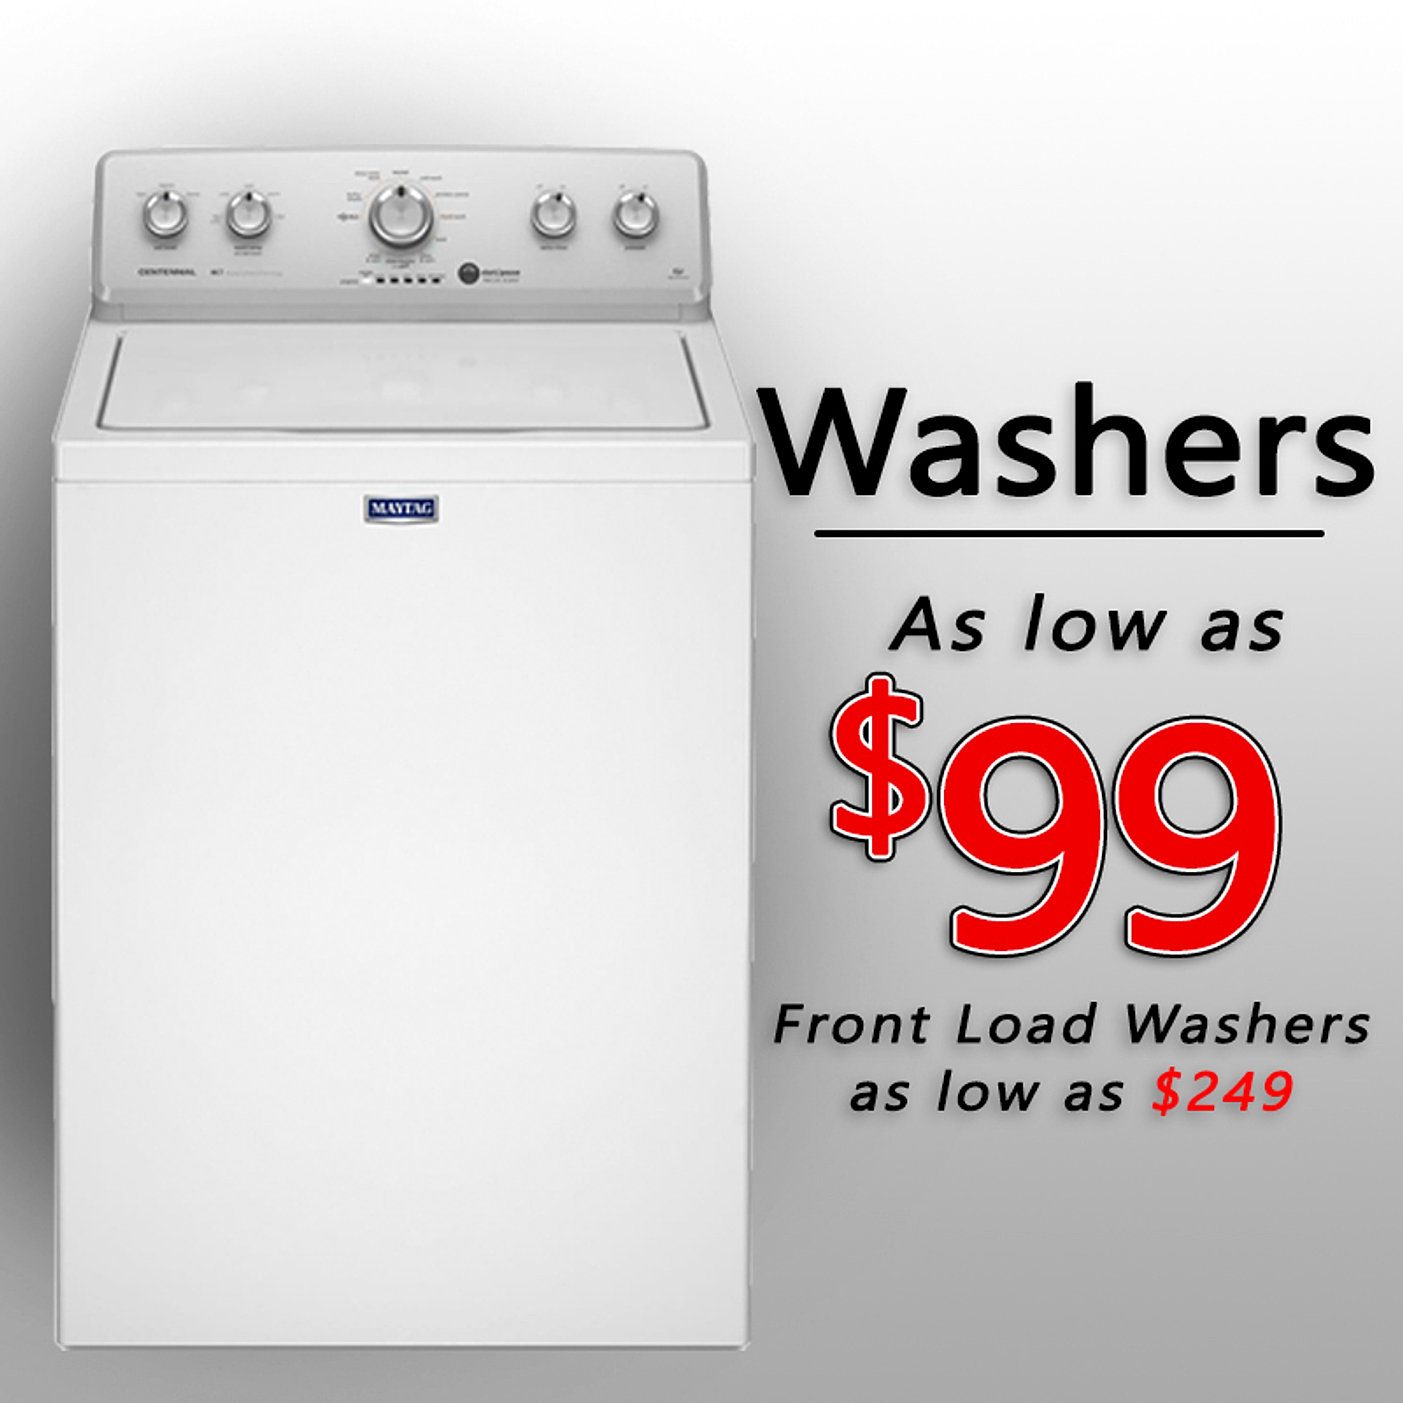 Affordable Used Appliances 11 Colorado Locations